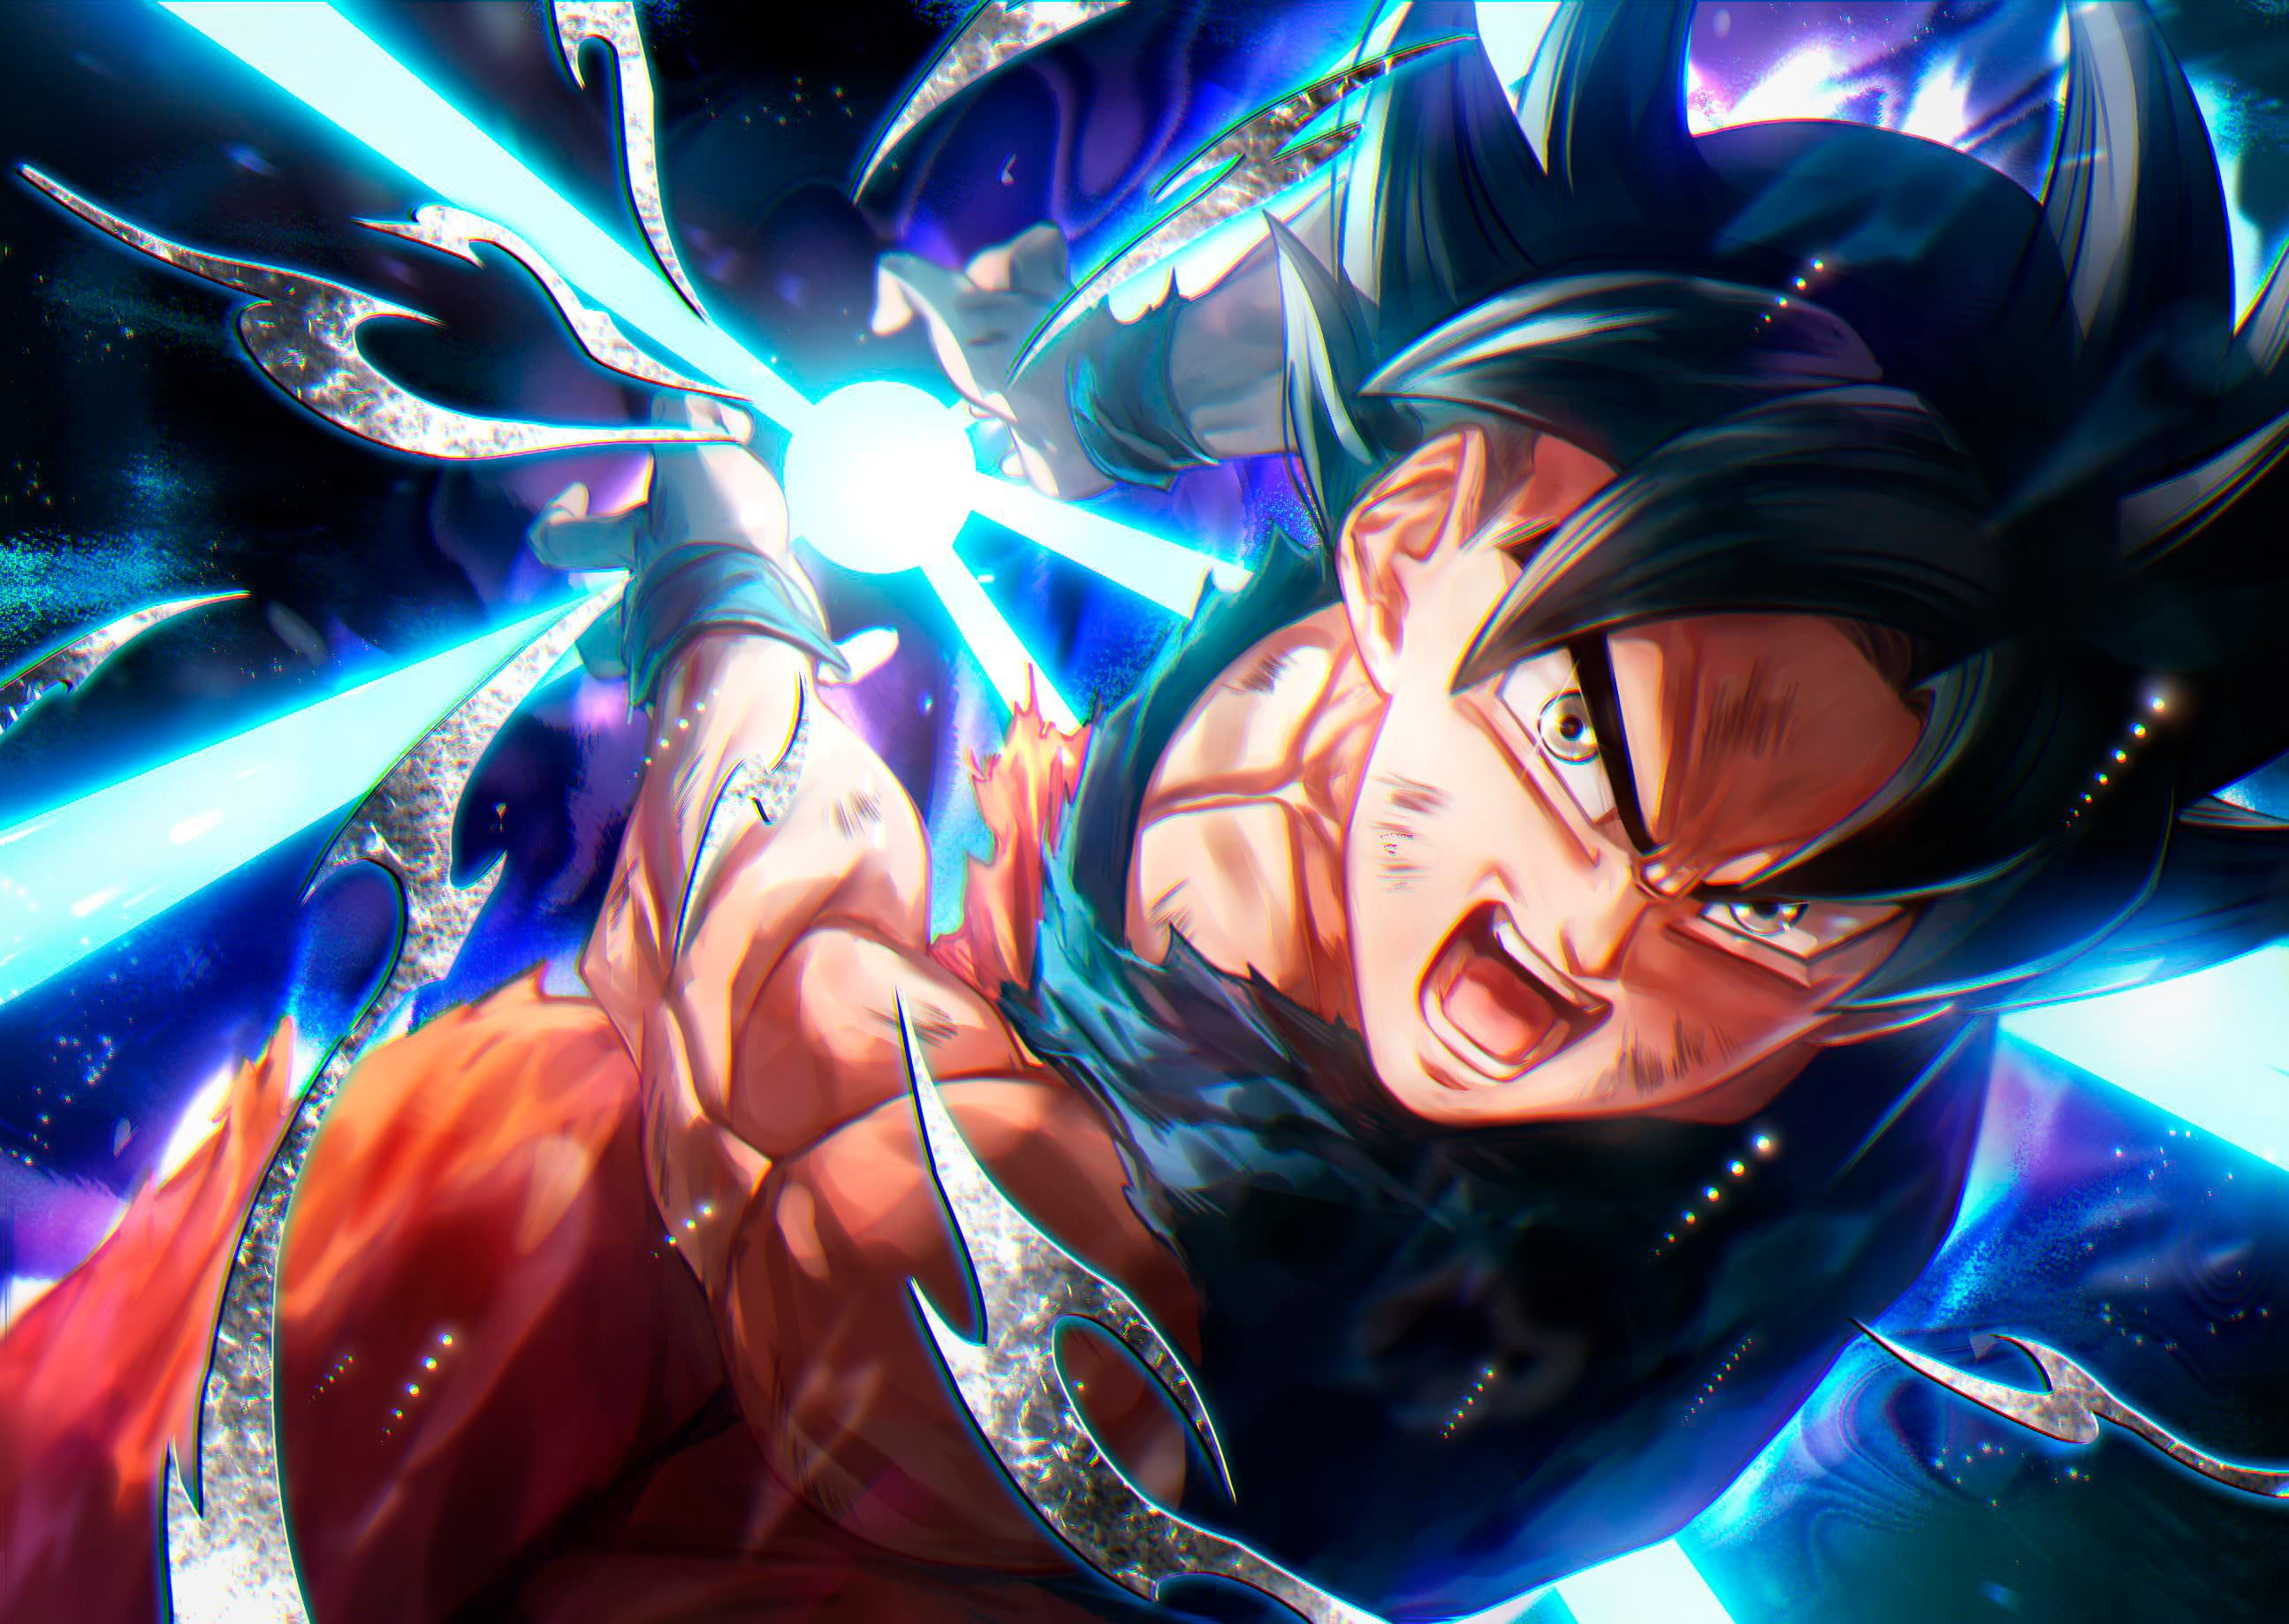 Dragon Ball Dragon Ball Super Ultra Instinct Son Goku 2k Wallpaper Hdwallpaper Dragon Ball Super Manga Dragon Ball Wallpapers Dragon Ball Super Wallpapers